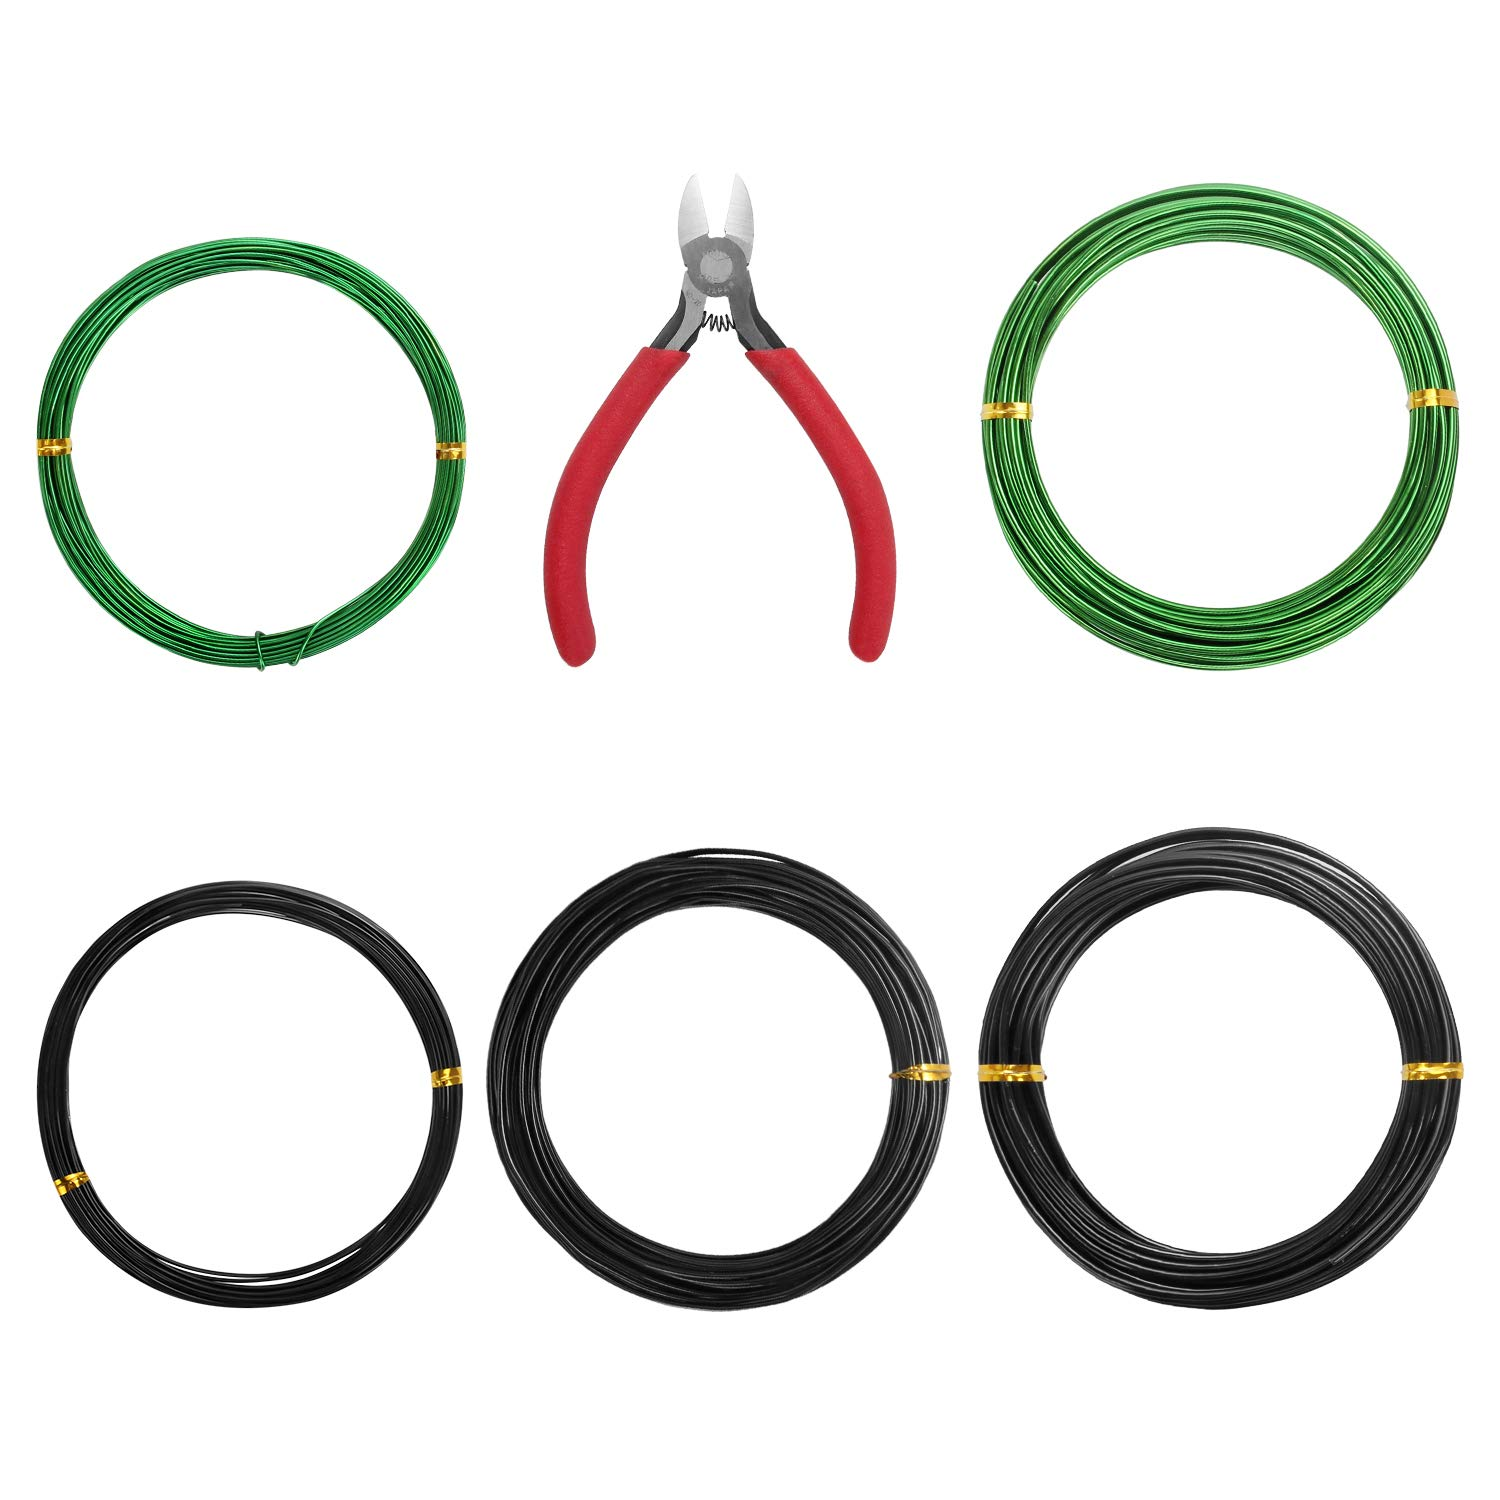 A+Selected 5 Pack Tree Training Wire with Cutting Plier, 32 Feet / 10 Meter Craft Aluminum Garden Wire for Holding Bonsai Branches and Small Bonsai Trunks (1.0mm, 1.5mm, 2.0mm, Each Size 10 m)